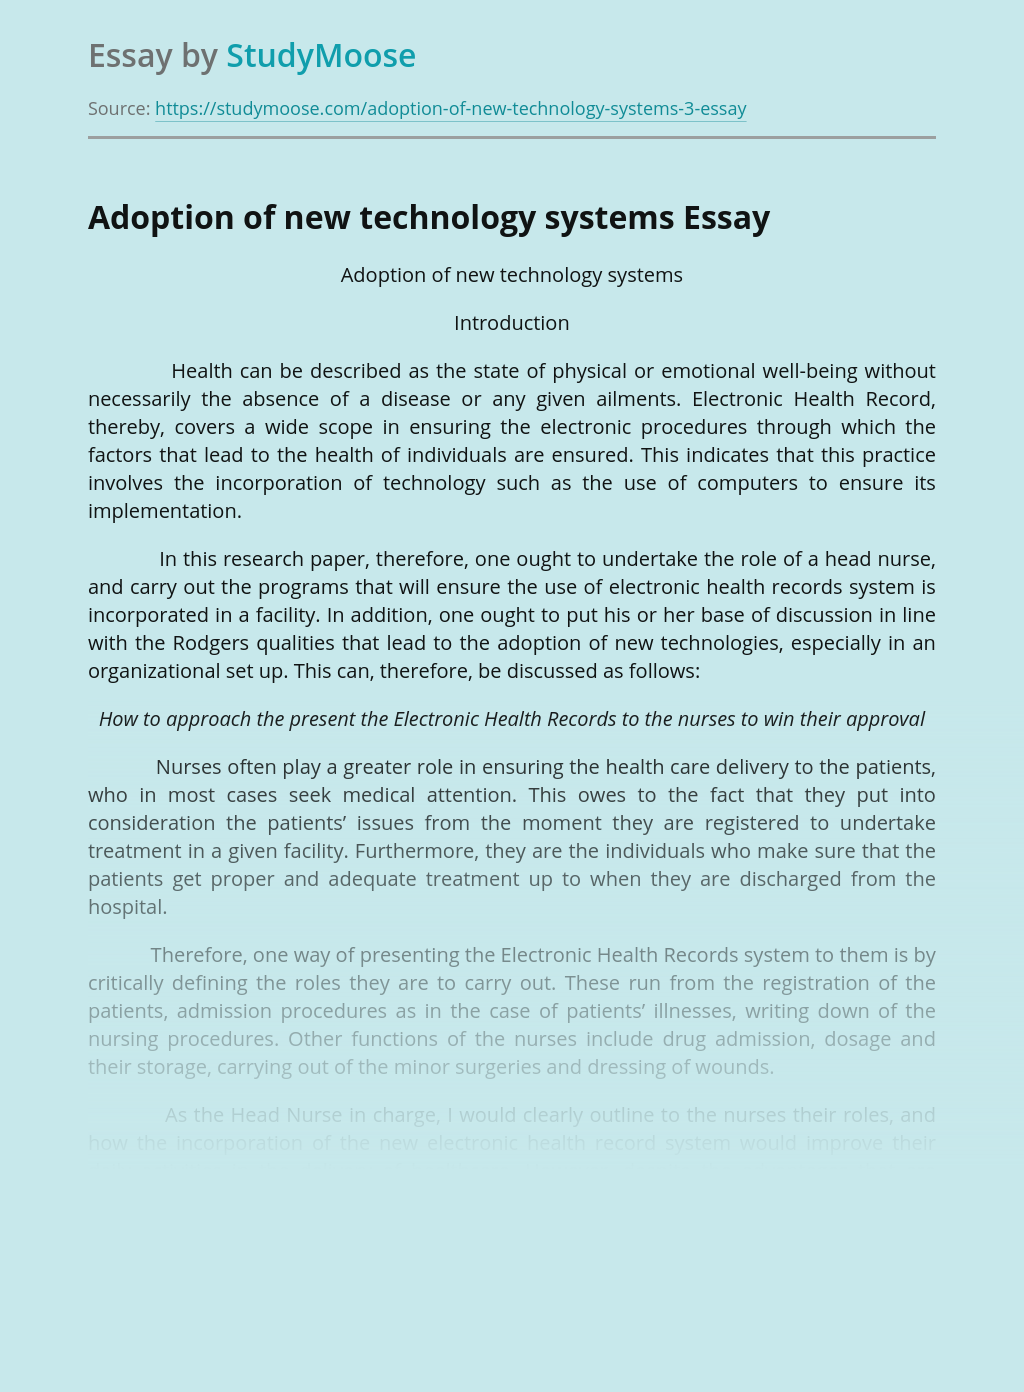 Adoption of new technology systems